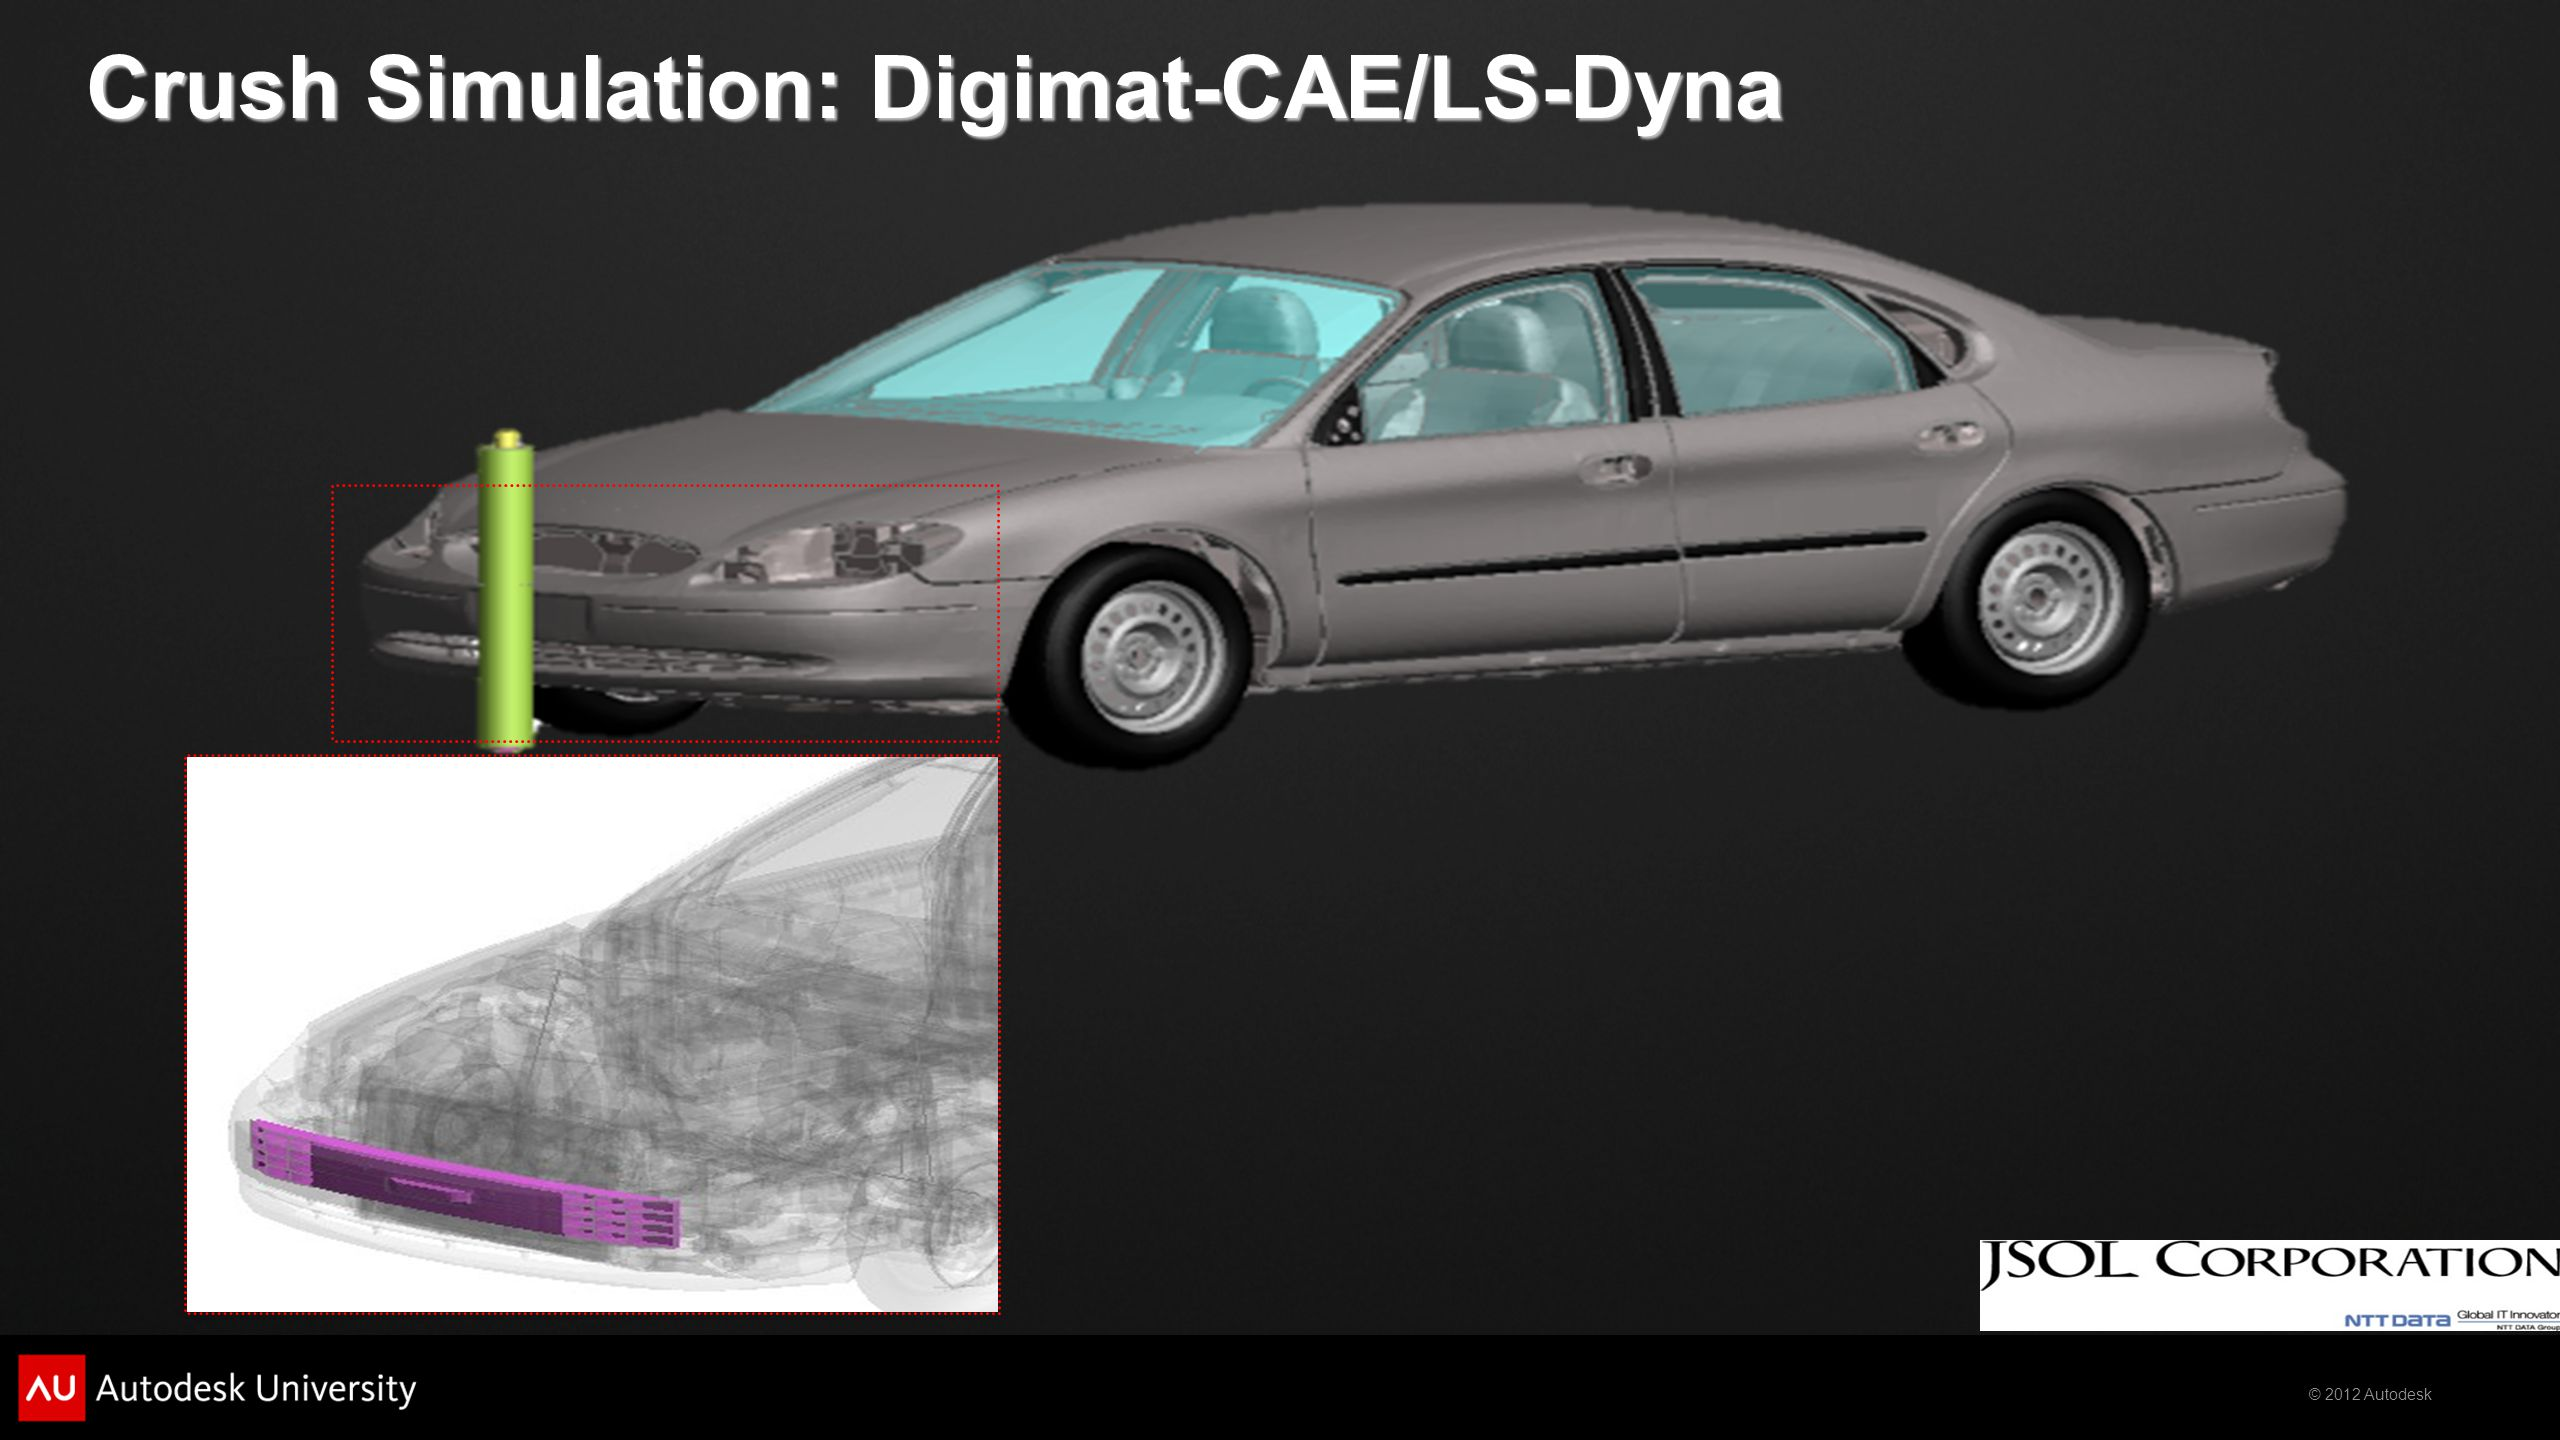 Crush Simulation: Digimat-CAE/LS-Dyna